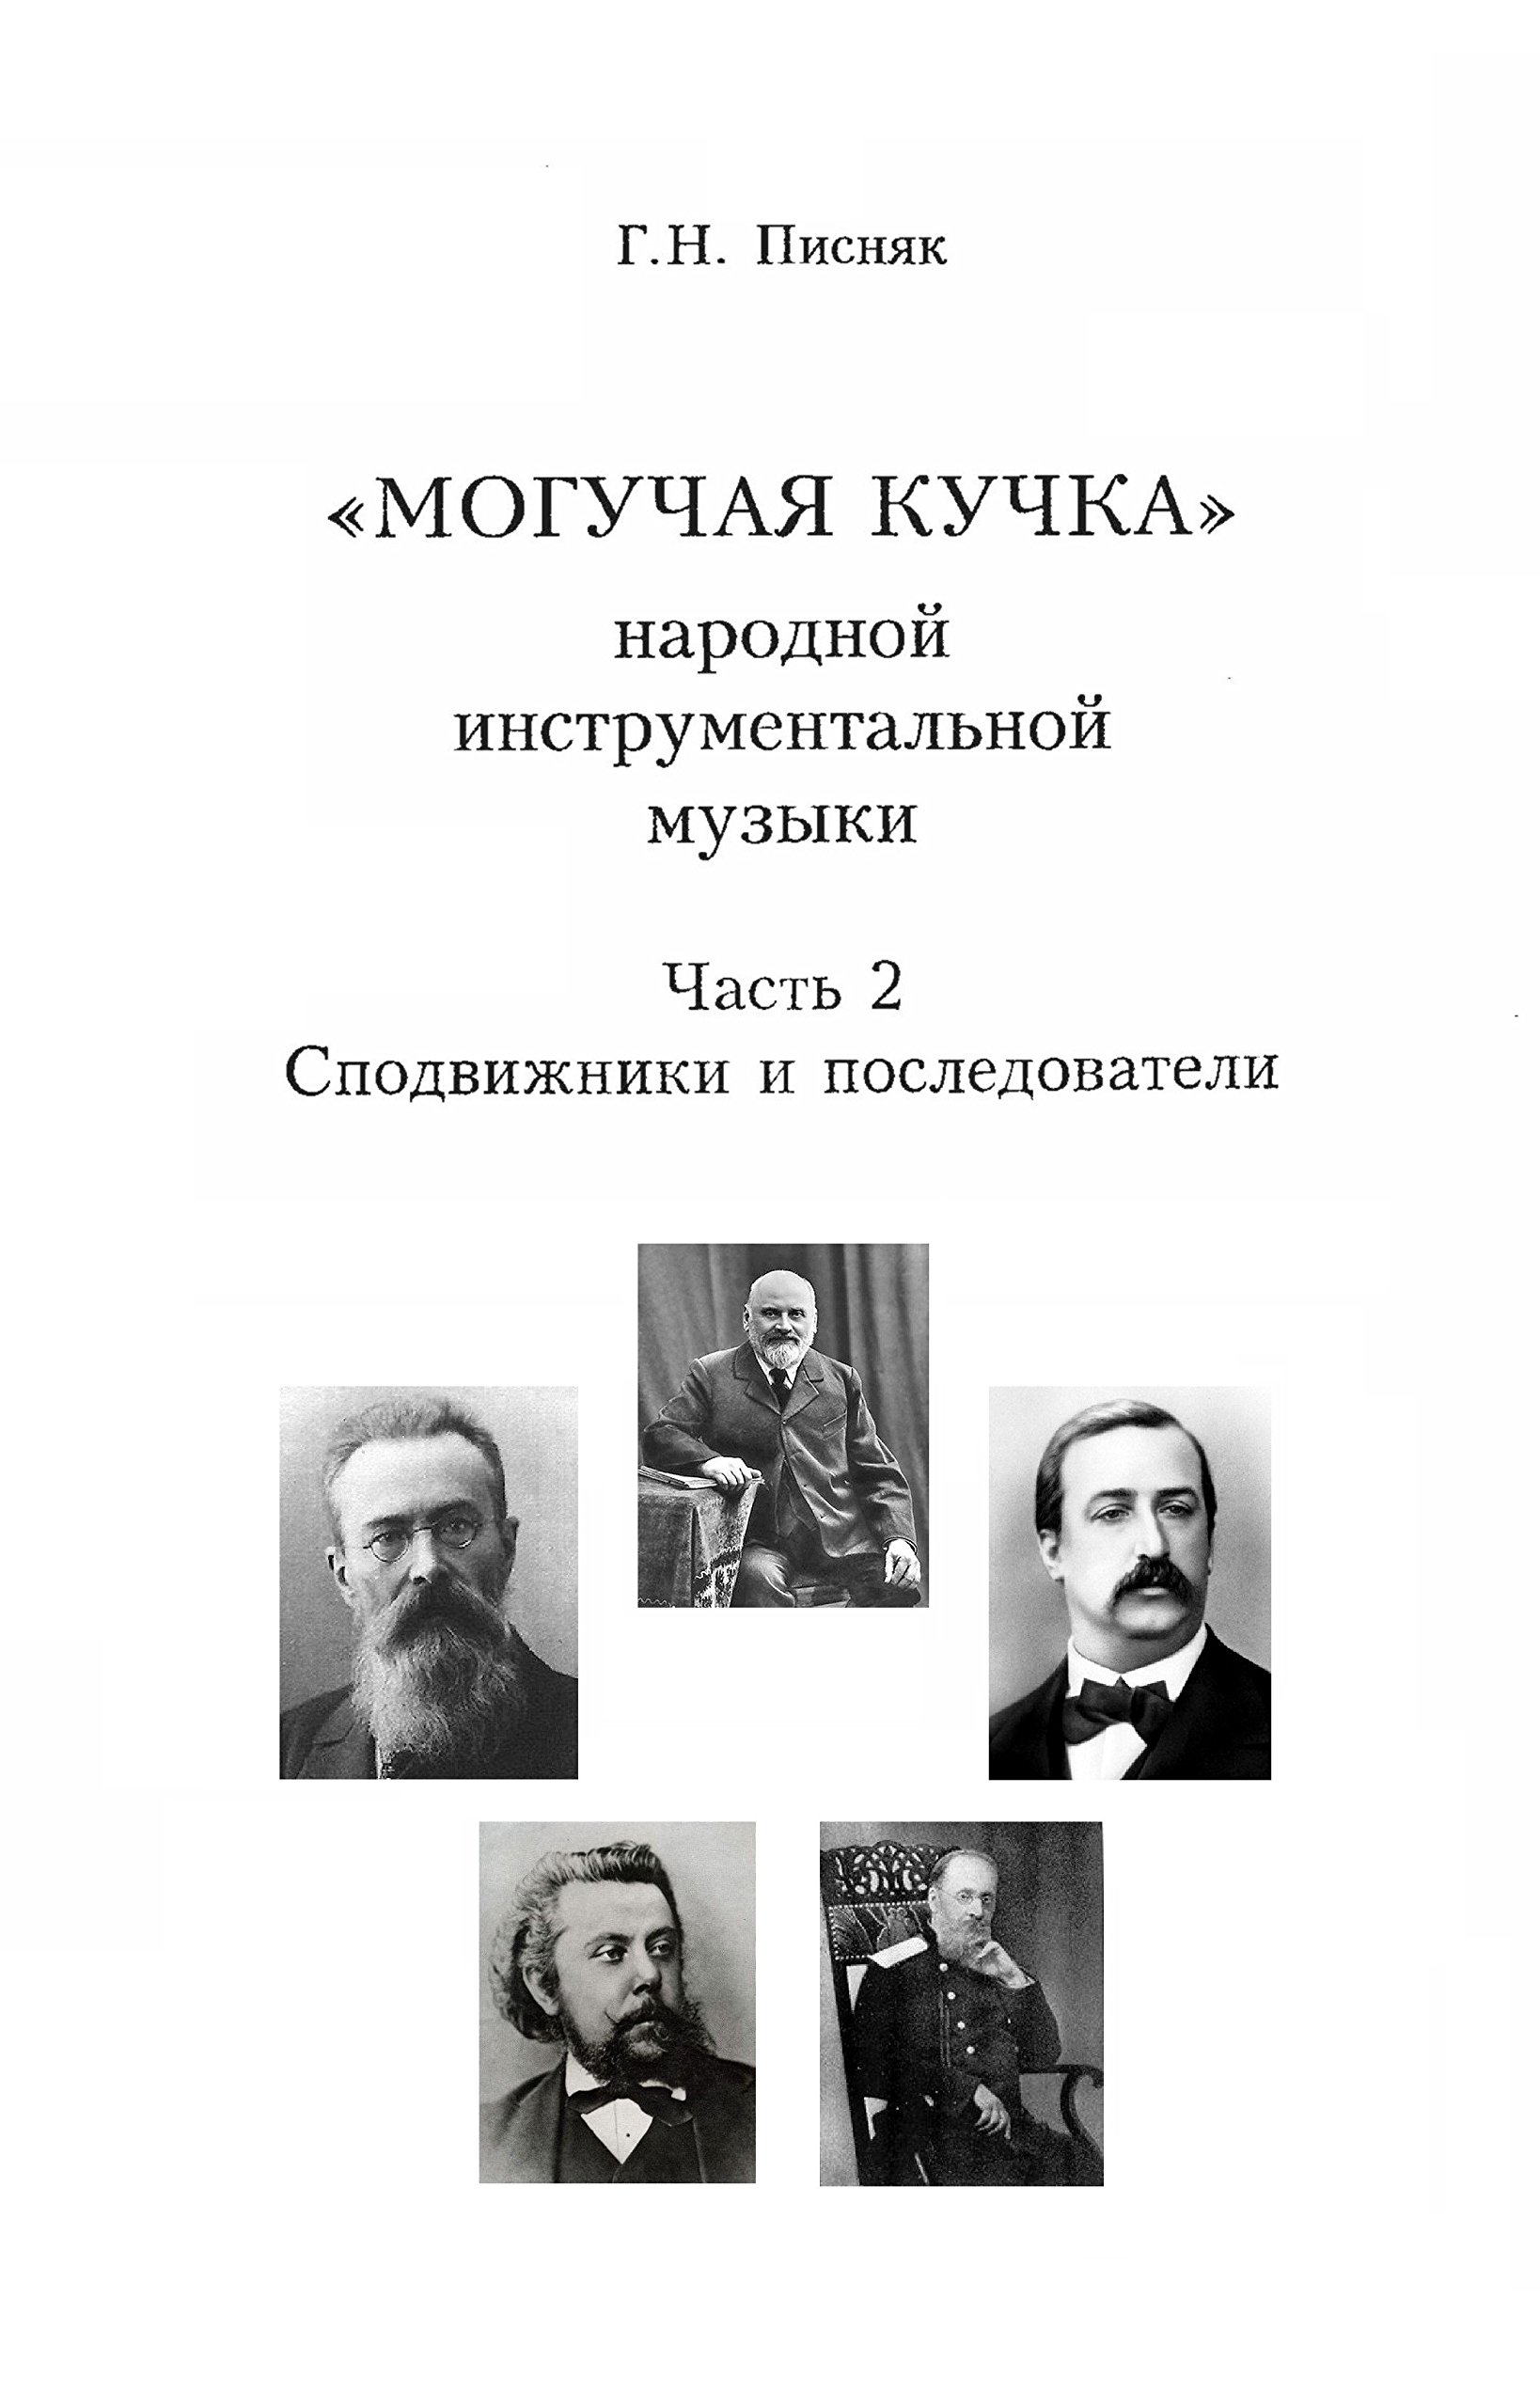 Read Online The Mighty Handful. IN RUSSIAN. (The 'Five') Creators of the Russian Style of Classical Music. Part Two SPONSORS AND FOLLOWERS [Loose Leaf Facsimile] PDF